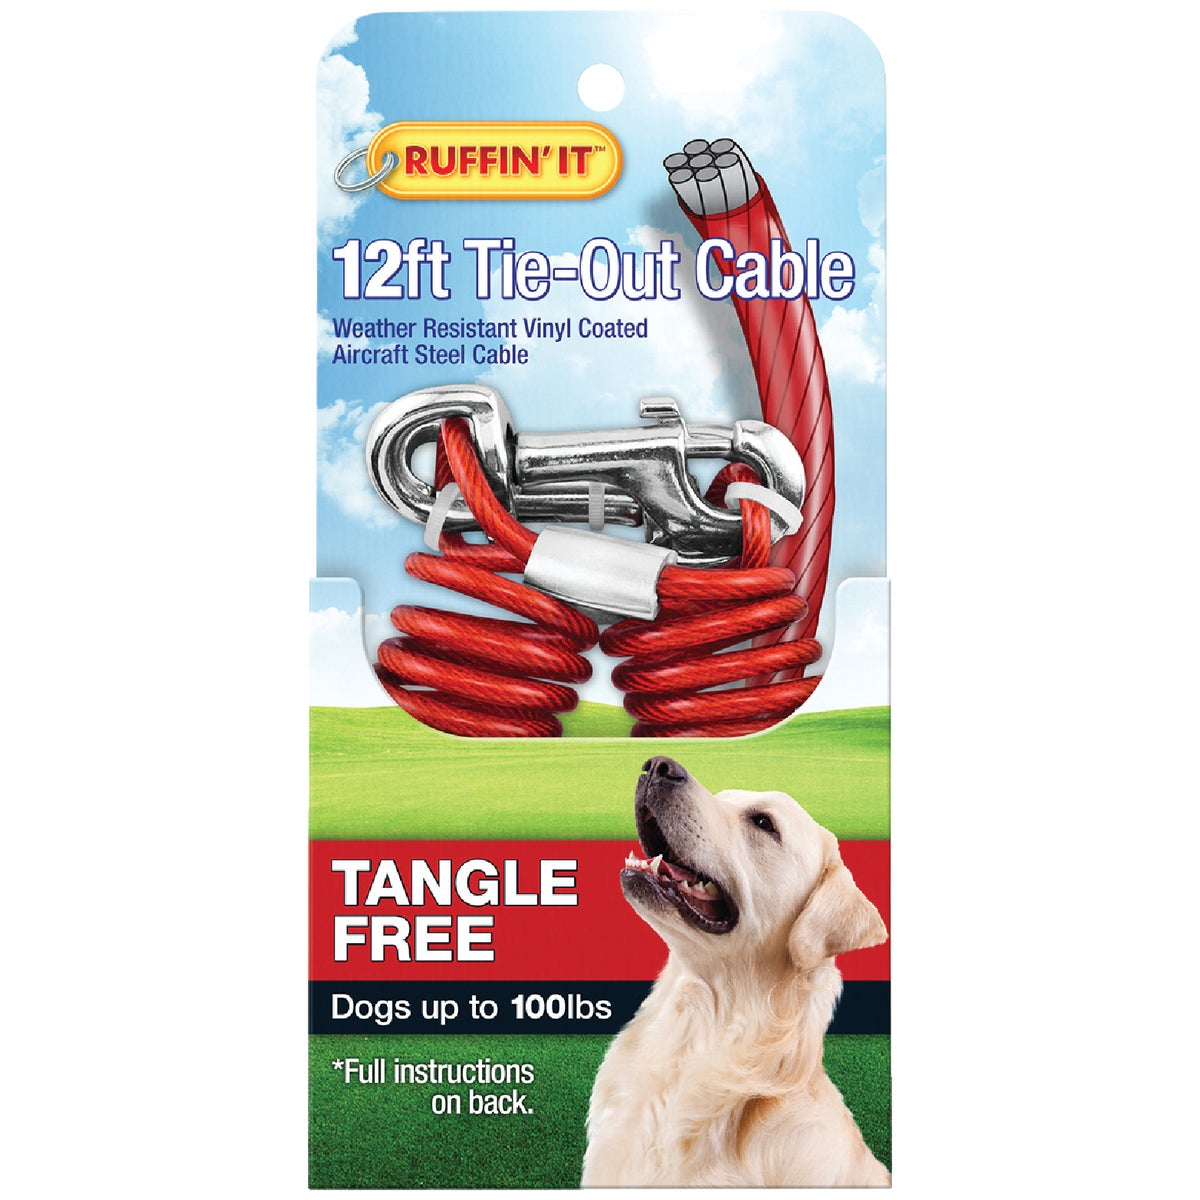 12'TNGL FRE TIEOUT CABLE - 29712 by Westminster Pet